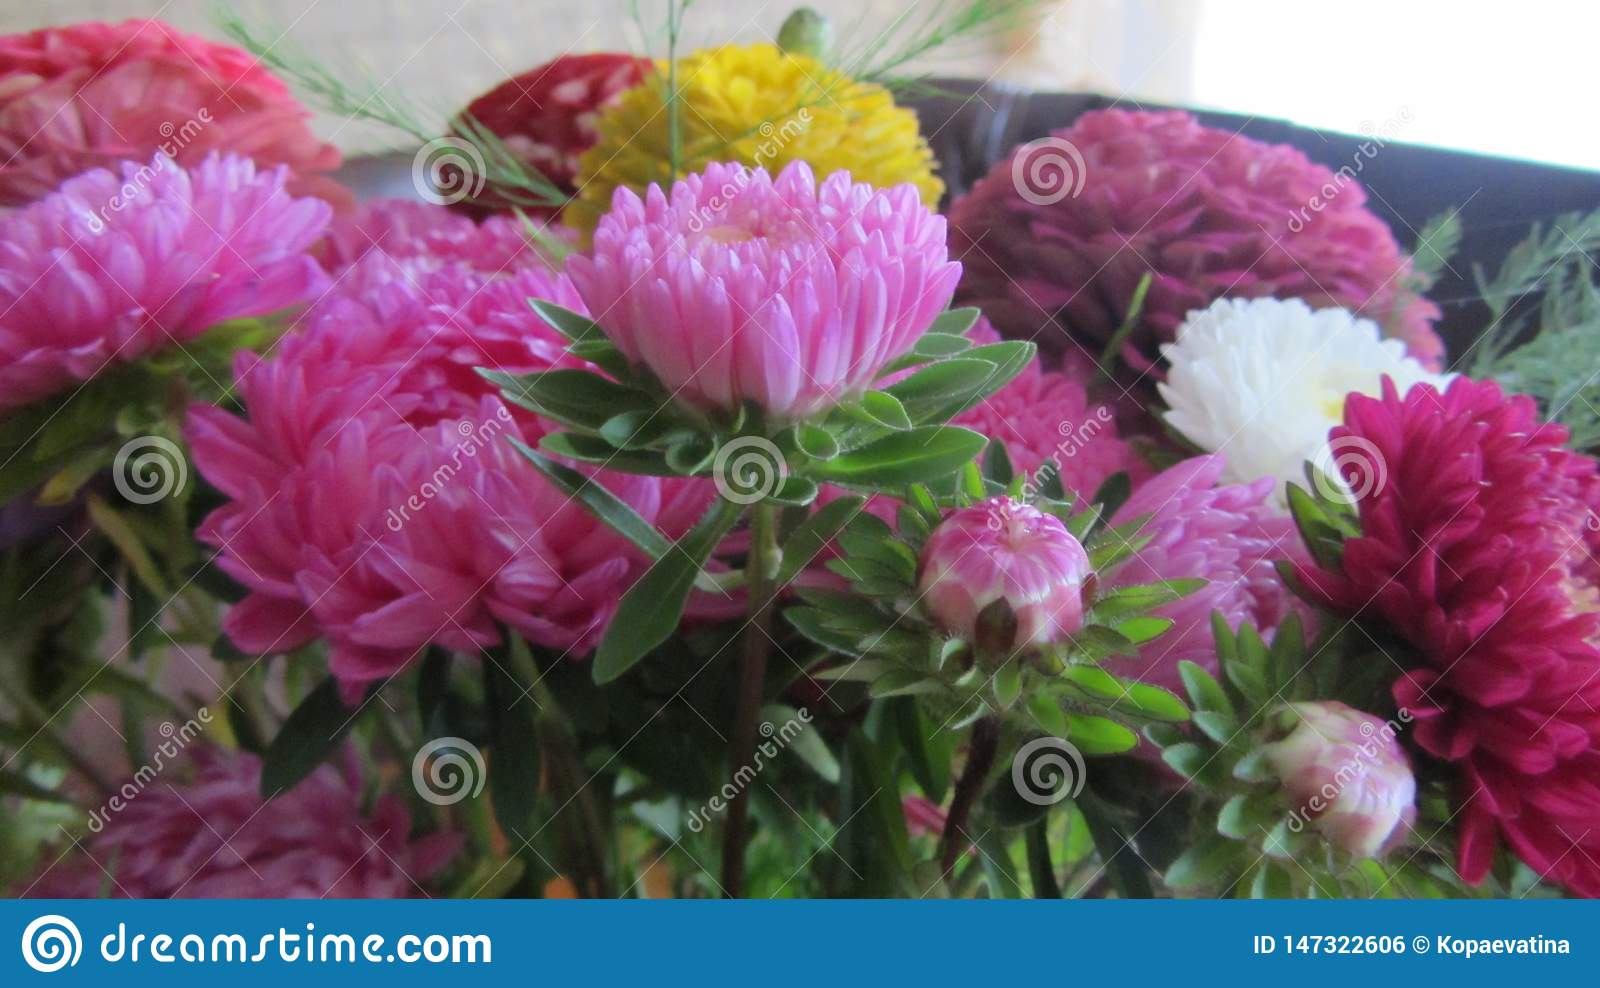 Bright, lush and fresh bouquet of asters.